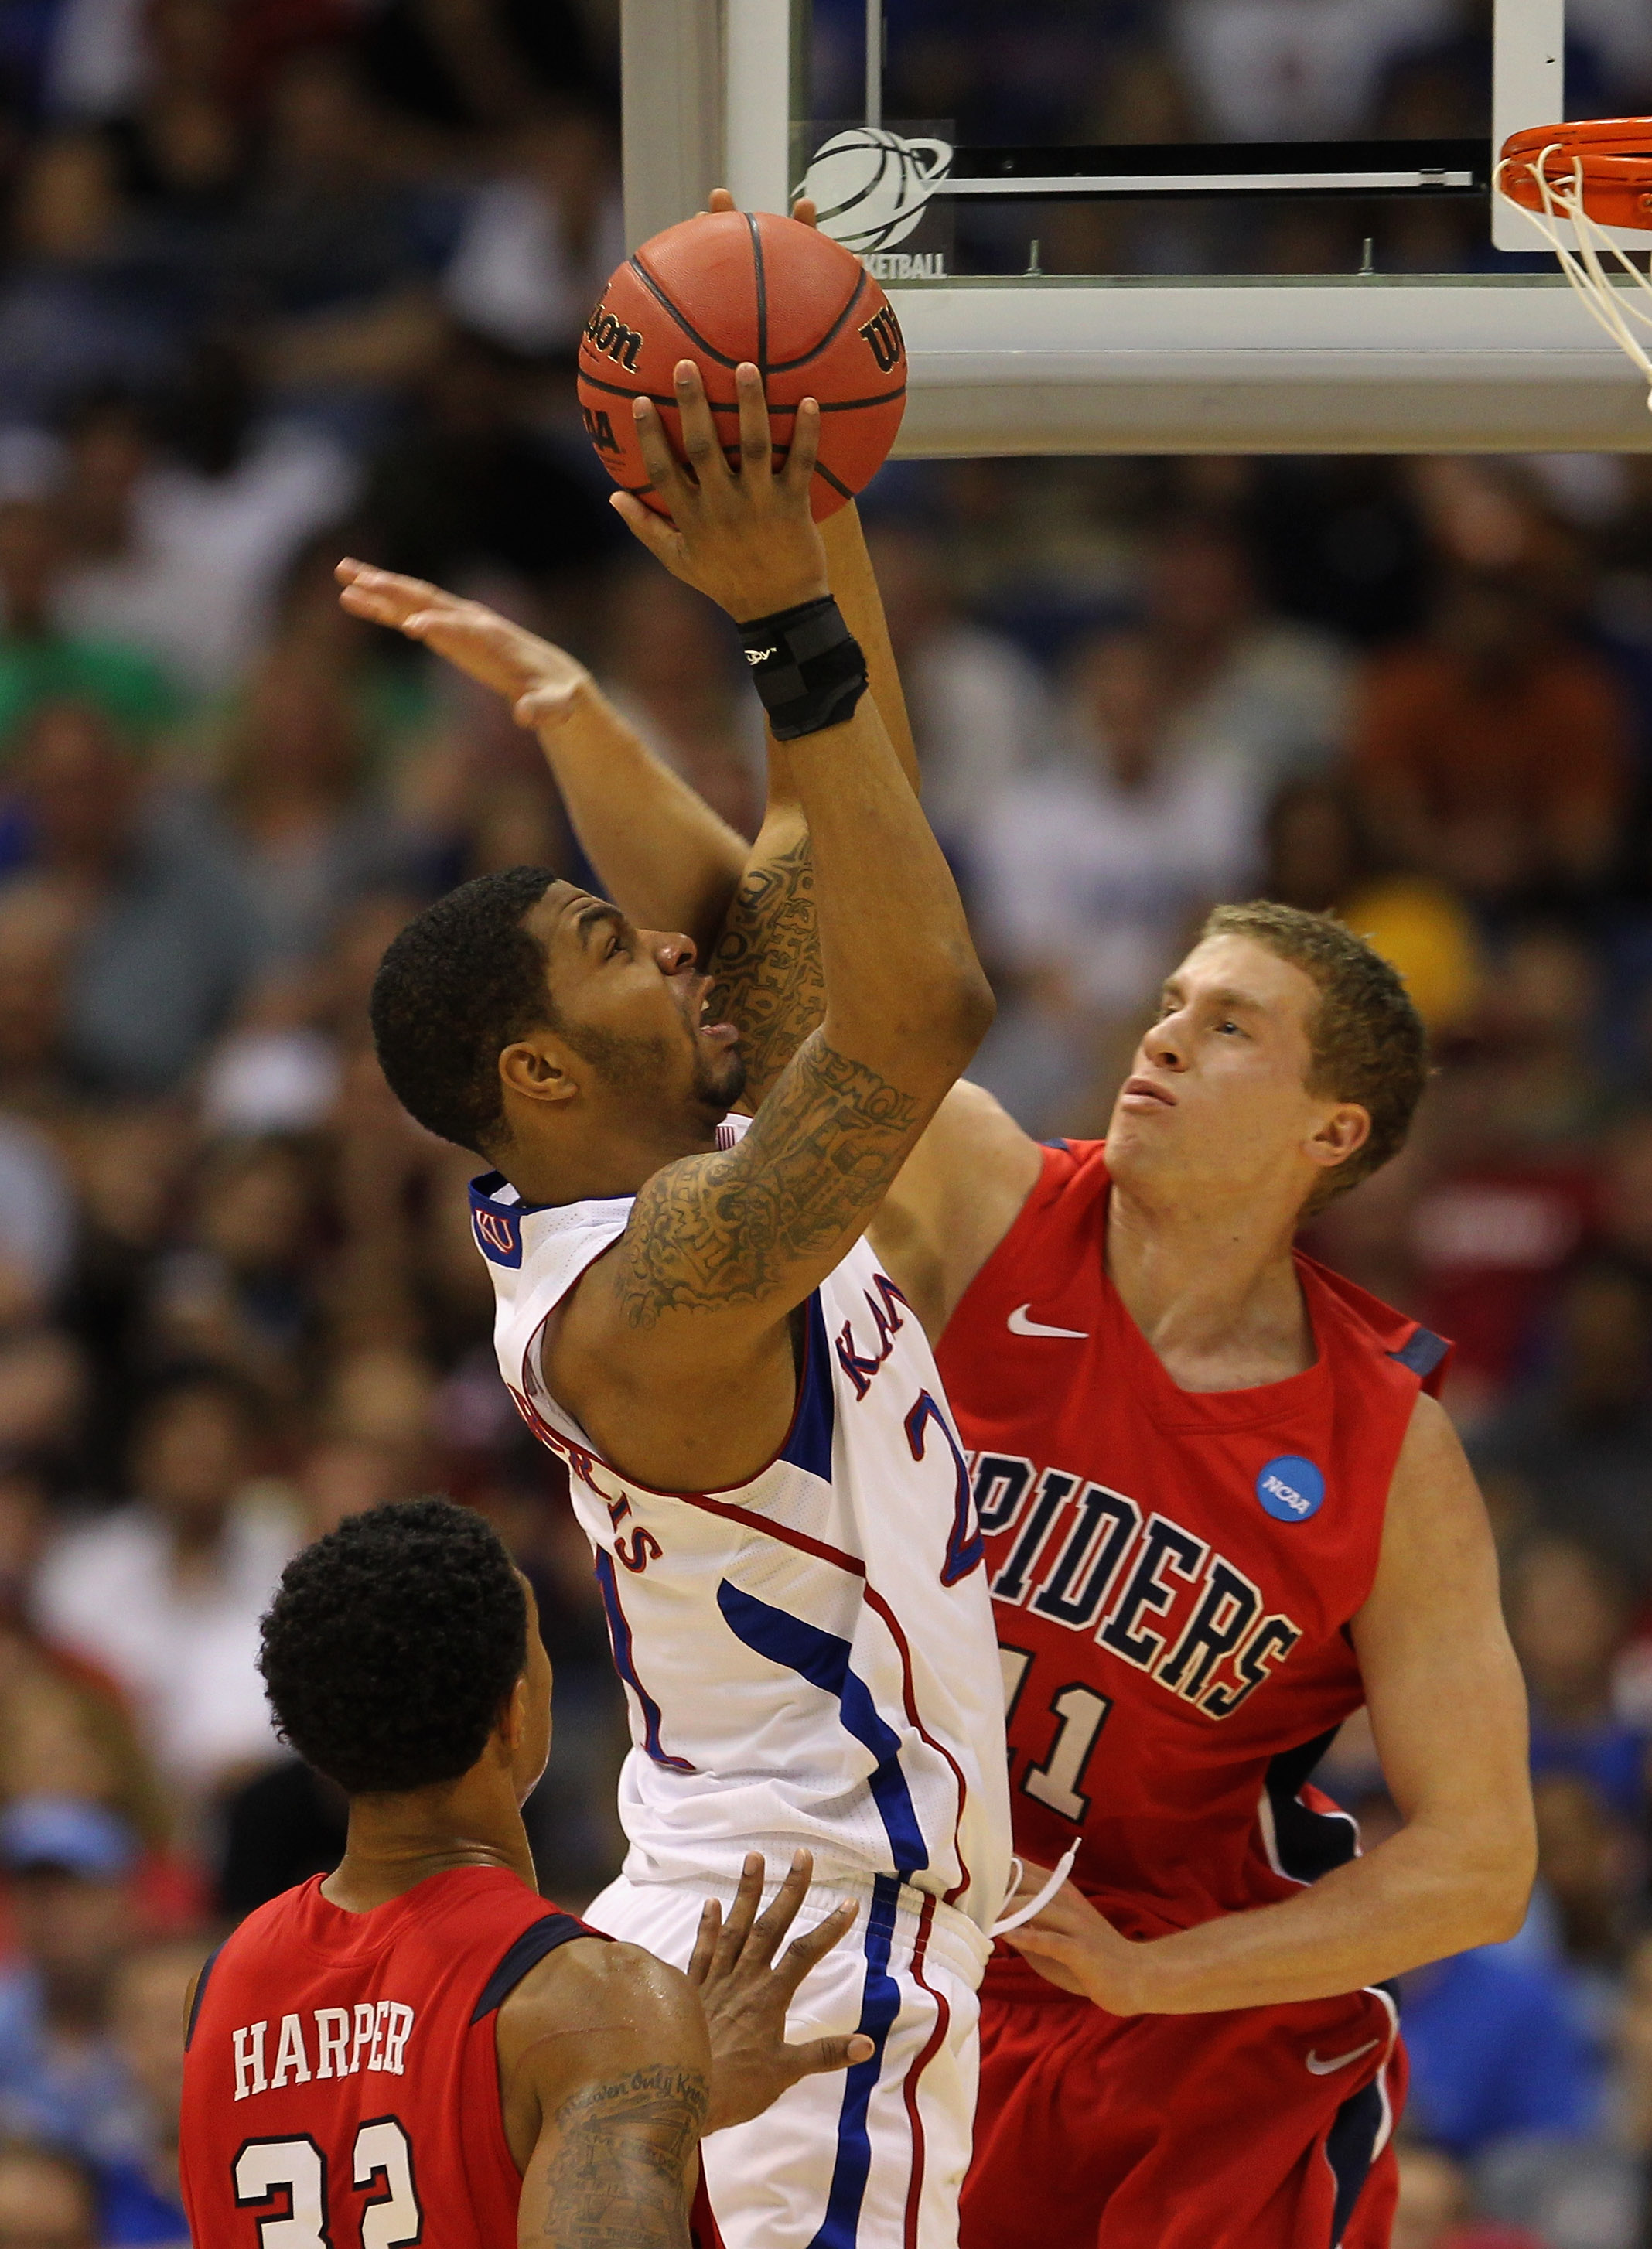 SAN ANTONIO, TX - MARCH 25:  Markieff Morris #21 of the Kansas Jayhawks goes to the basket against Josh Duinker #11 of the Richmond Spiders during the southwest regional of the 2011 NCAA men's basketball tournament at the Alamodome on March 25, 2011 in Sa